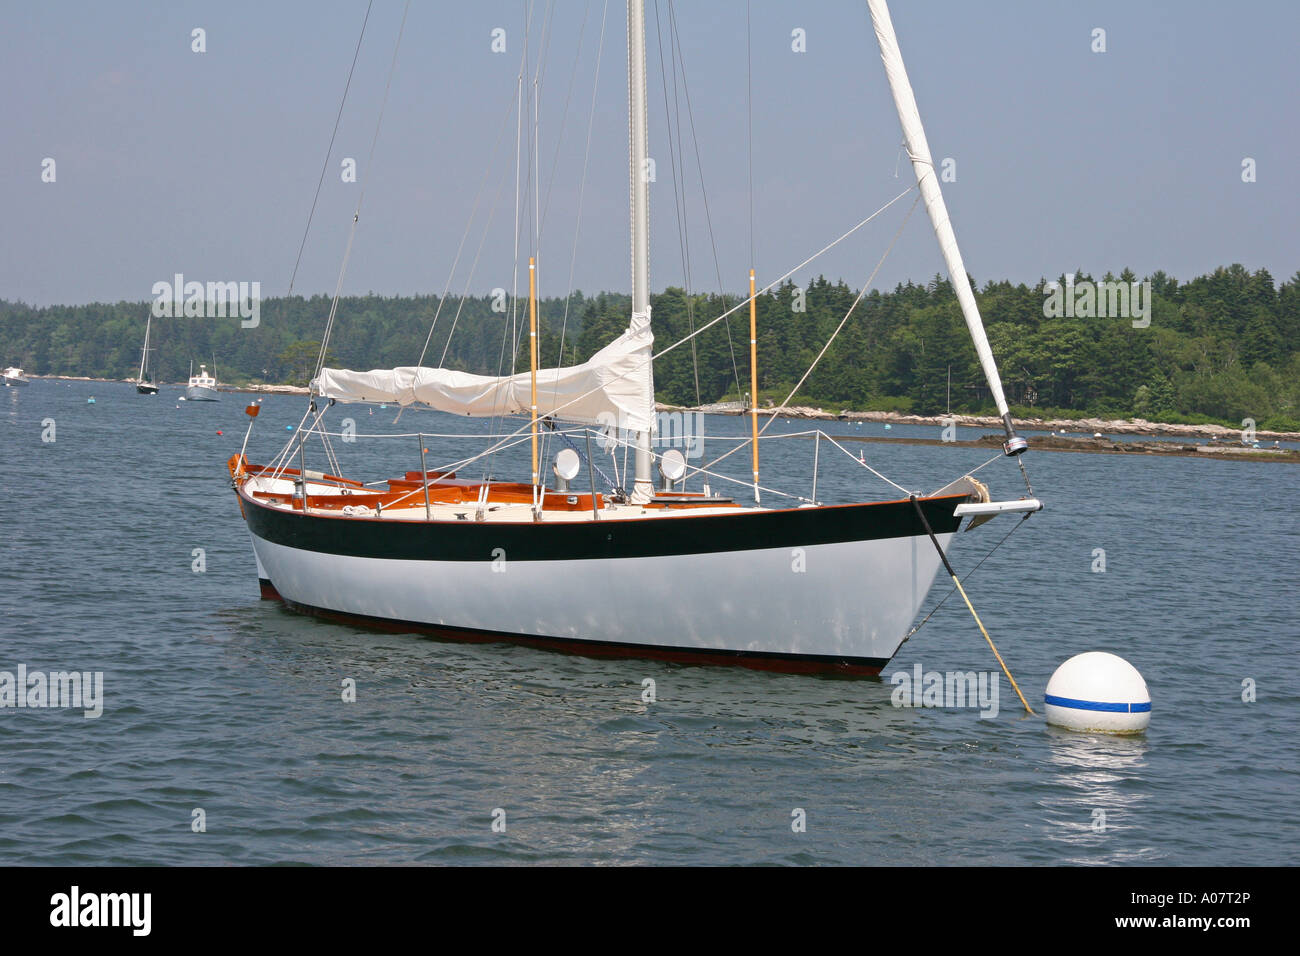 Double-Ended Sloop - Stock Image